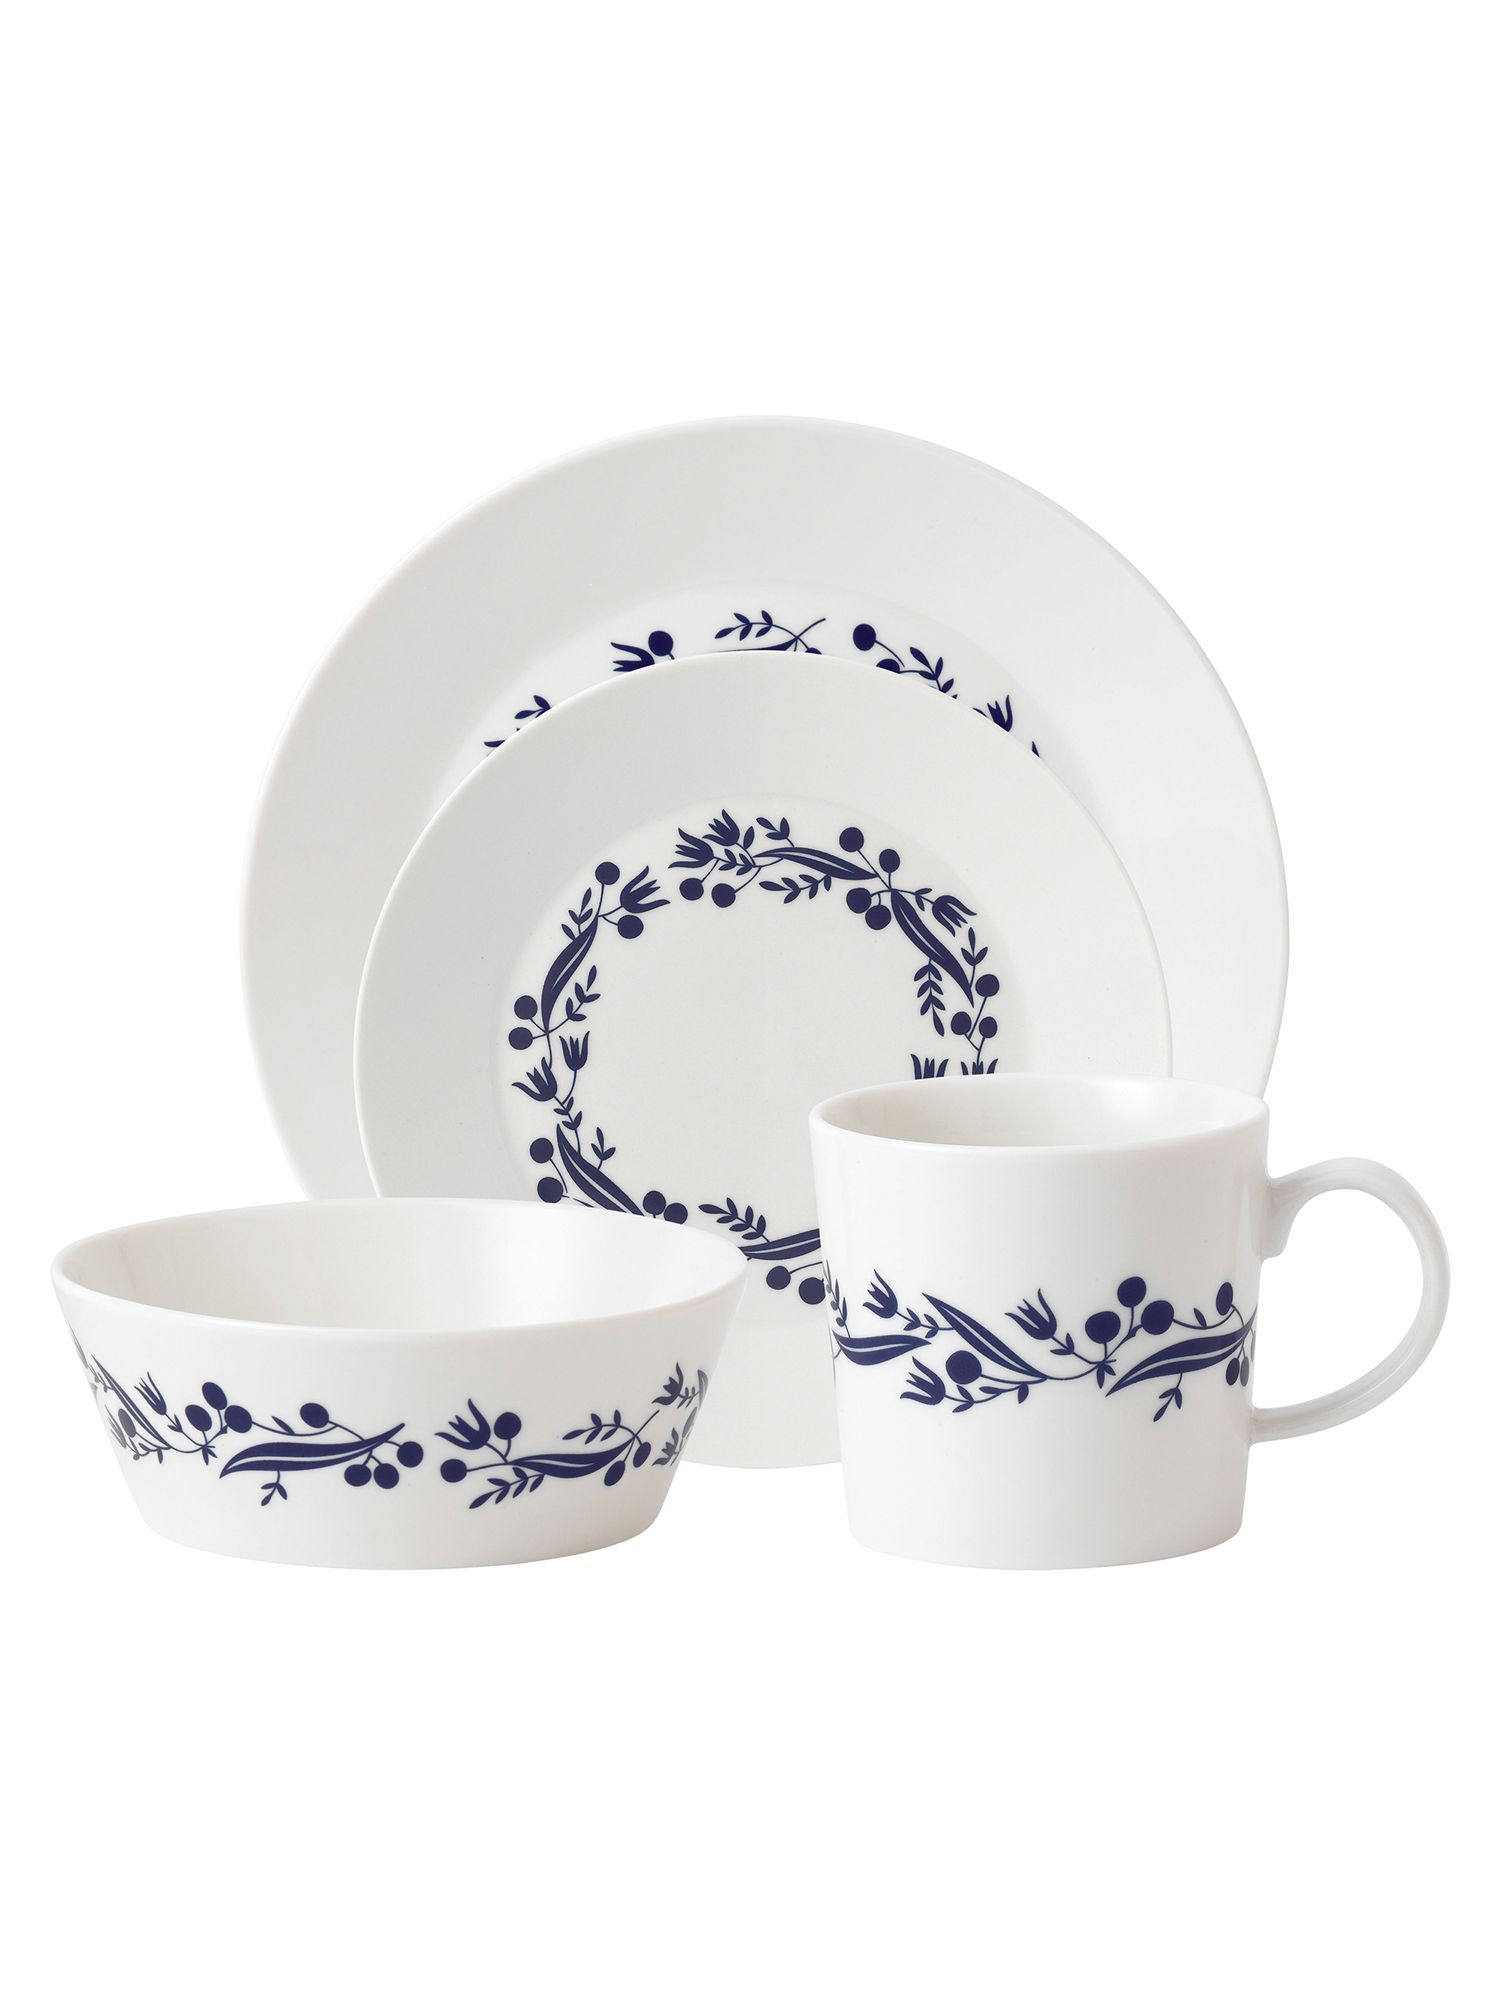 Fable garland dinnerware range